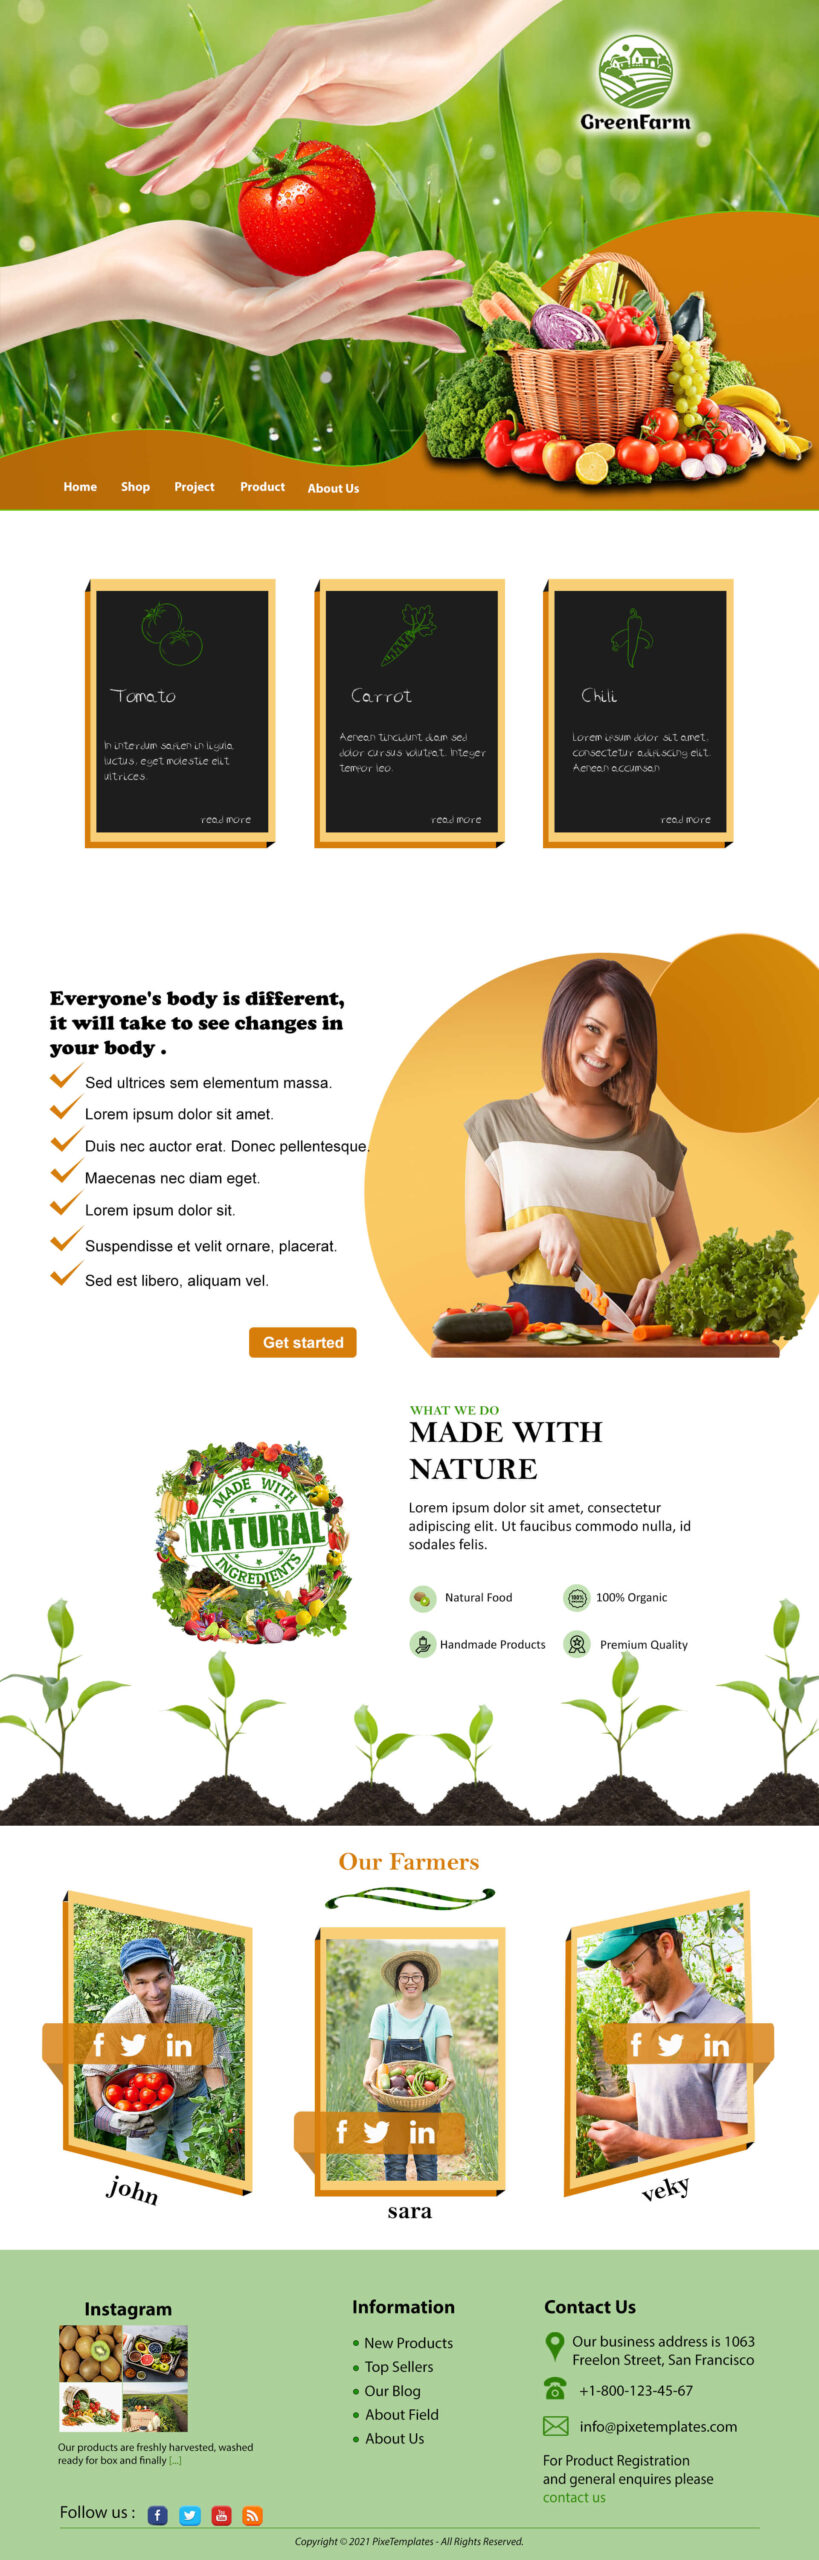 Green Farm Website Template for Free